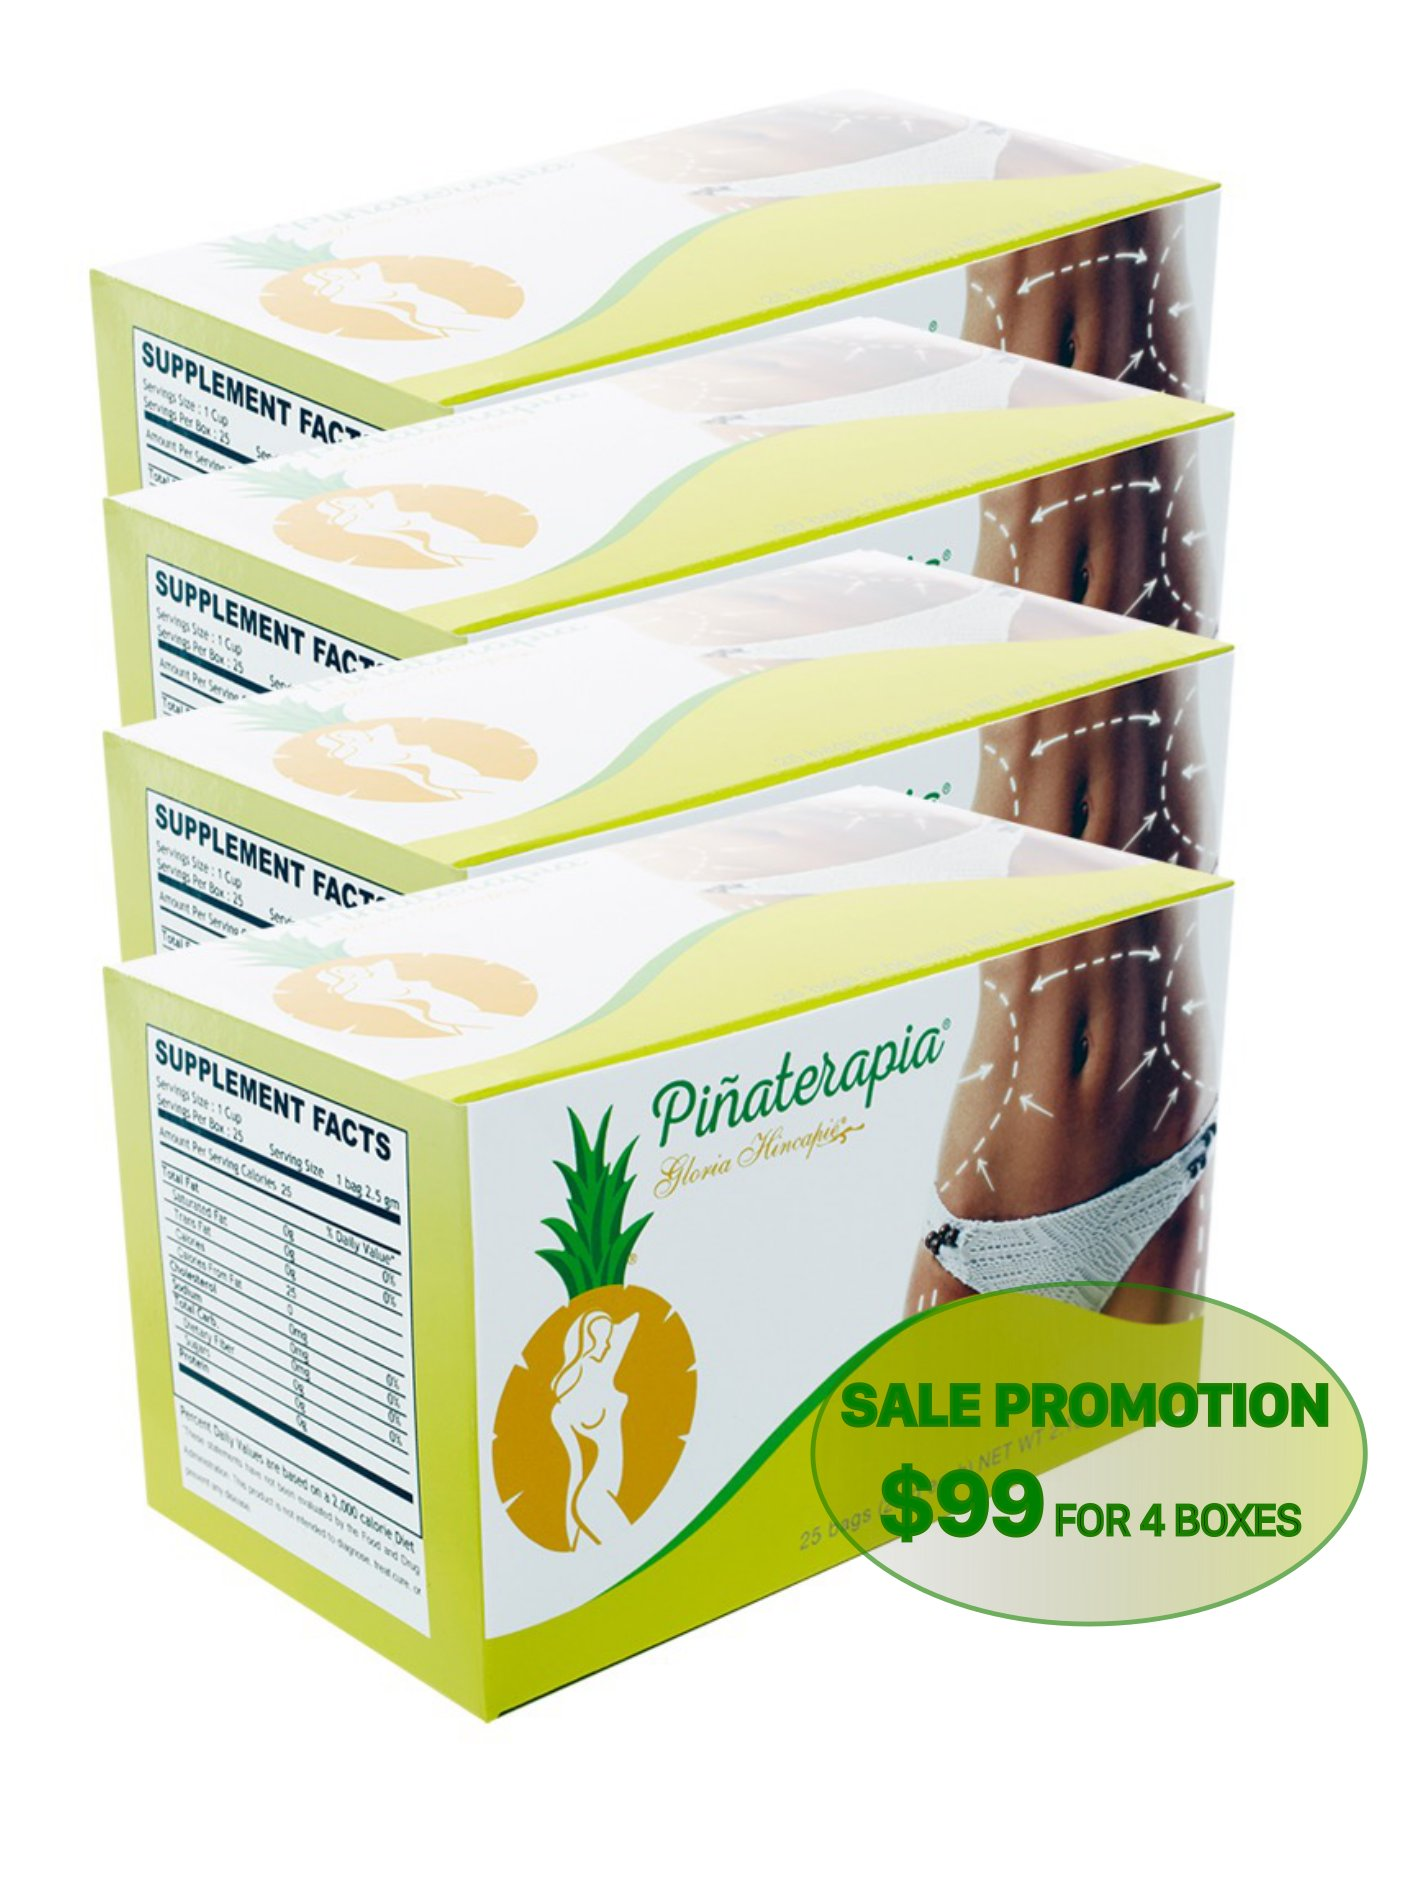 PINEAPLE Tea - Te de piña, Box Pack of 4